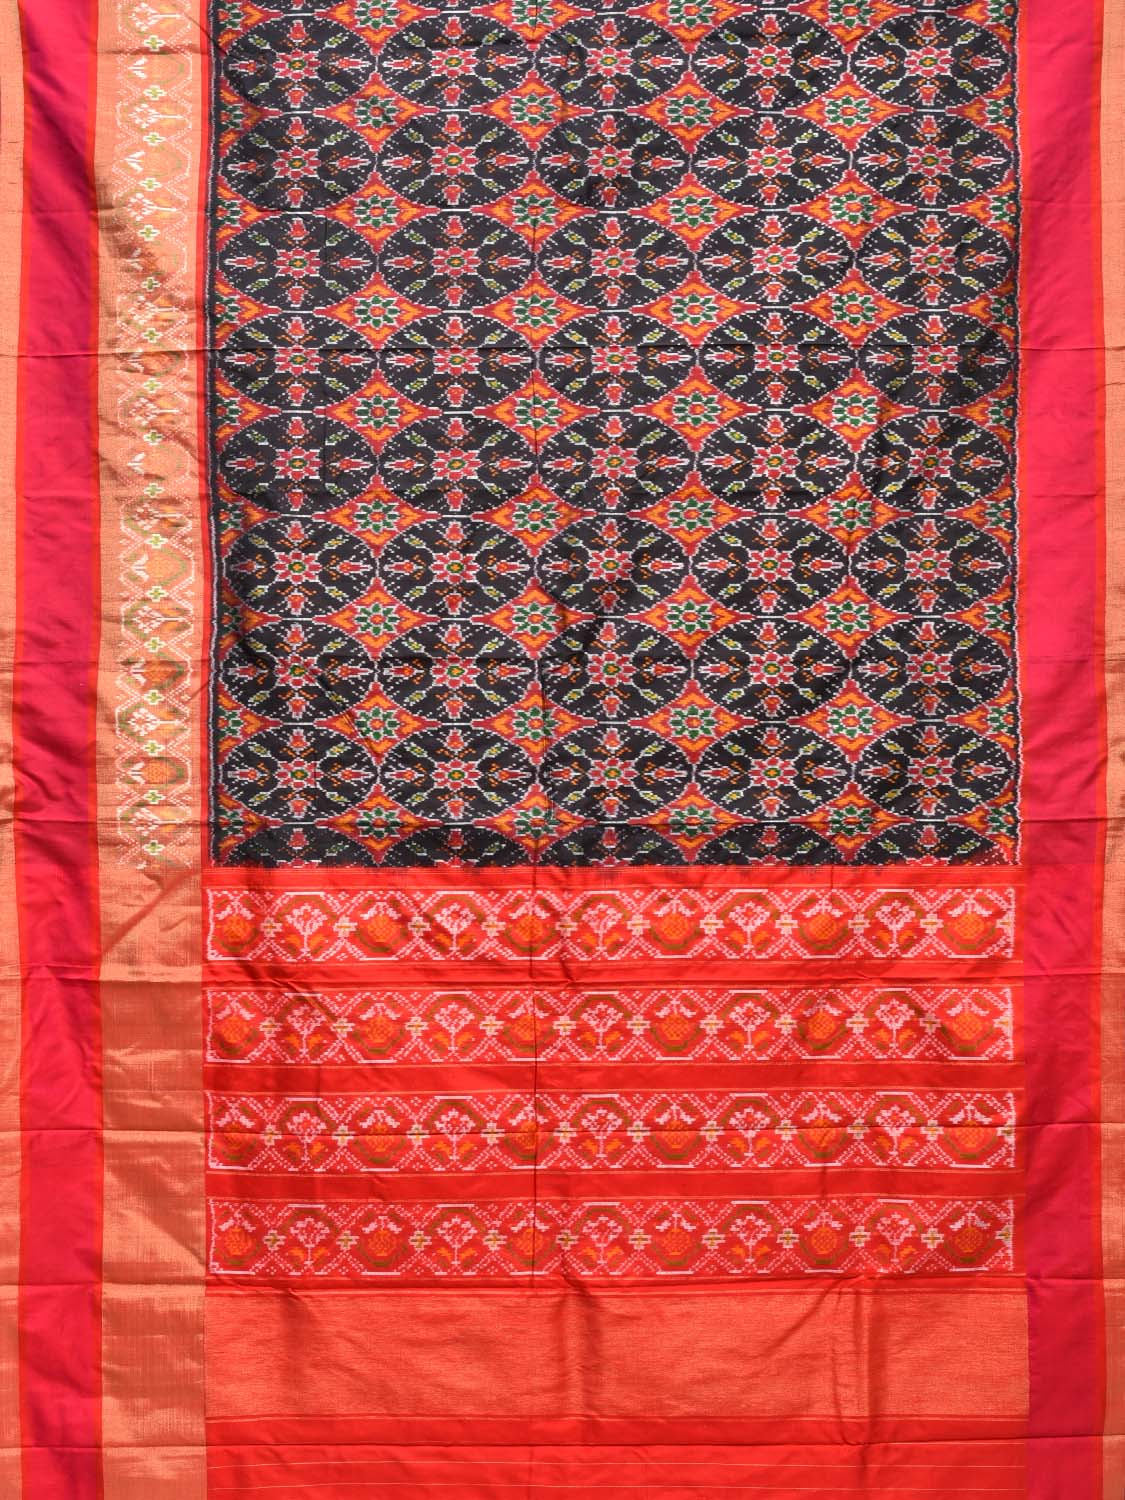 Black and Red Pochampally Single Ikat Silk Handloom Saree with All Over Design i0553